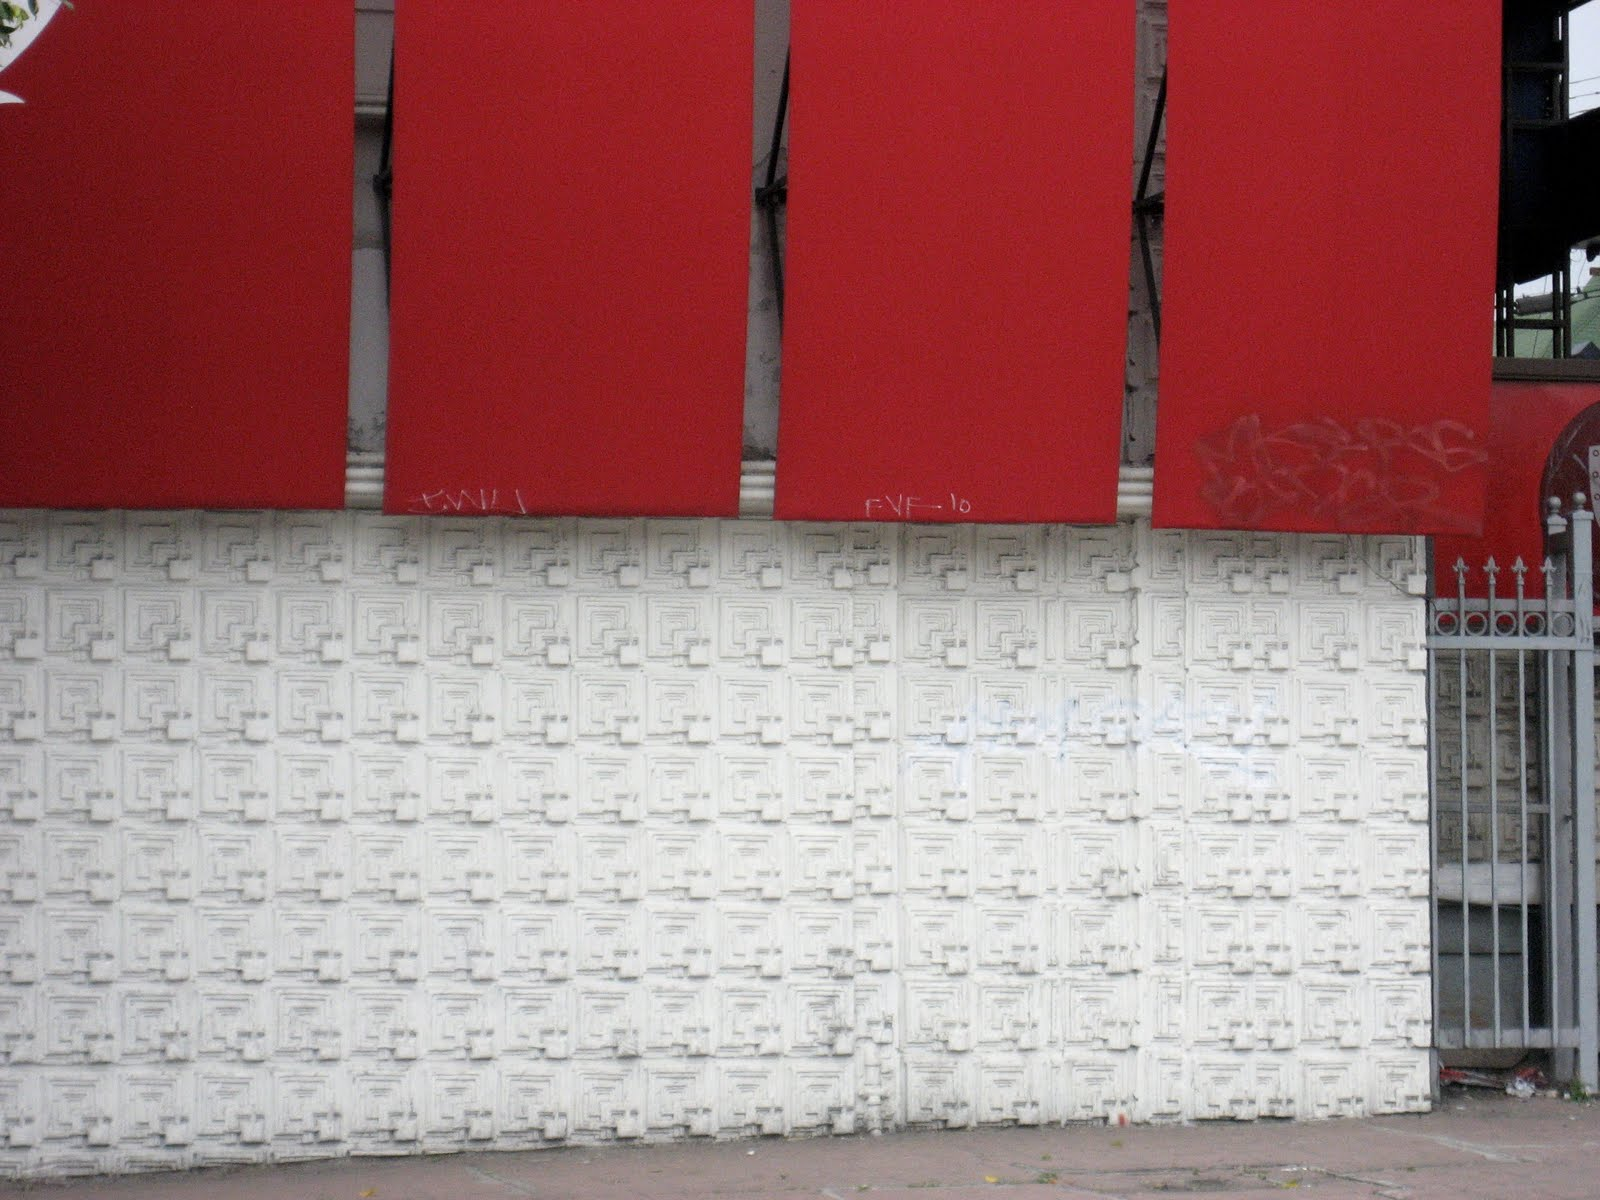 The ultimate examples of textured walls in Los Angeles from the 1920's are ...